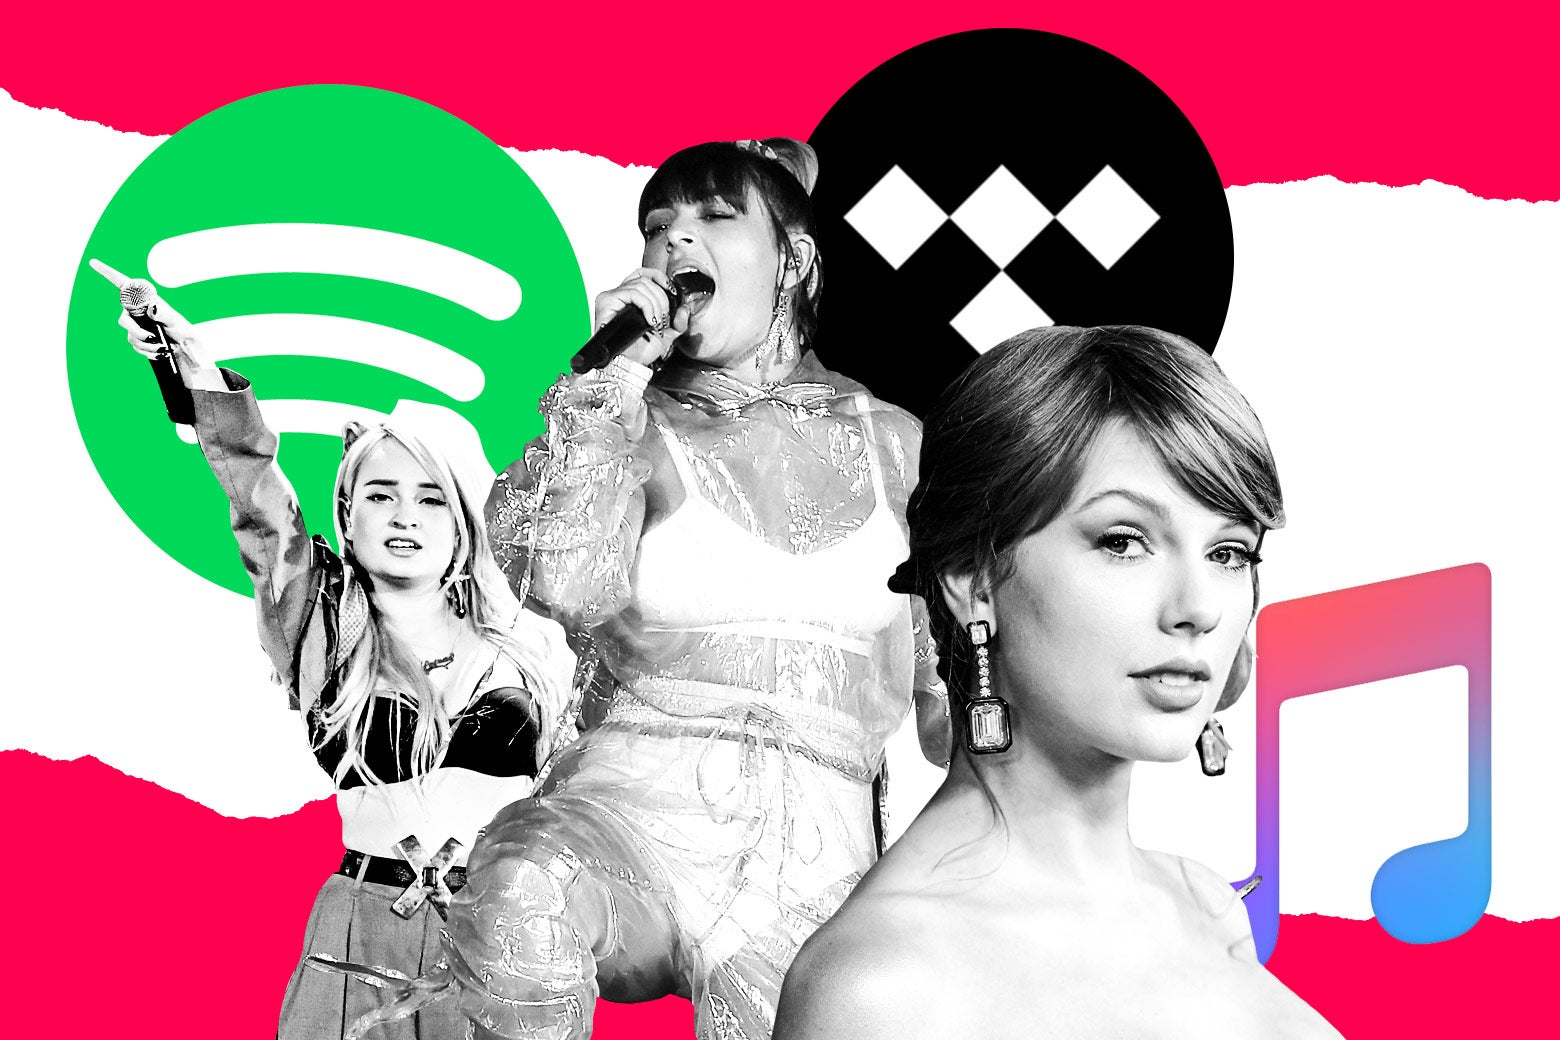 Kim Petras, Charli XCX, and Taylor Swift in front of logos for Spotify, Tidal, and Apple Music.